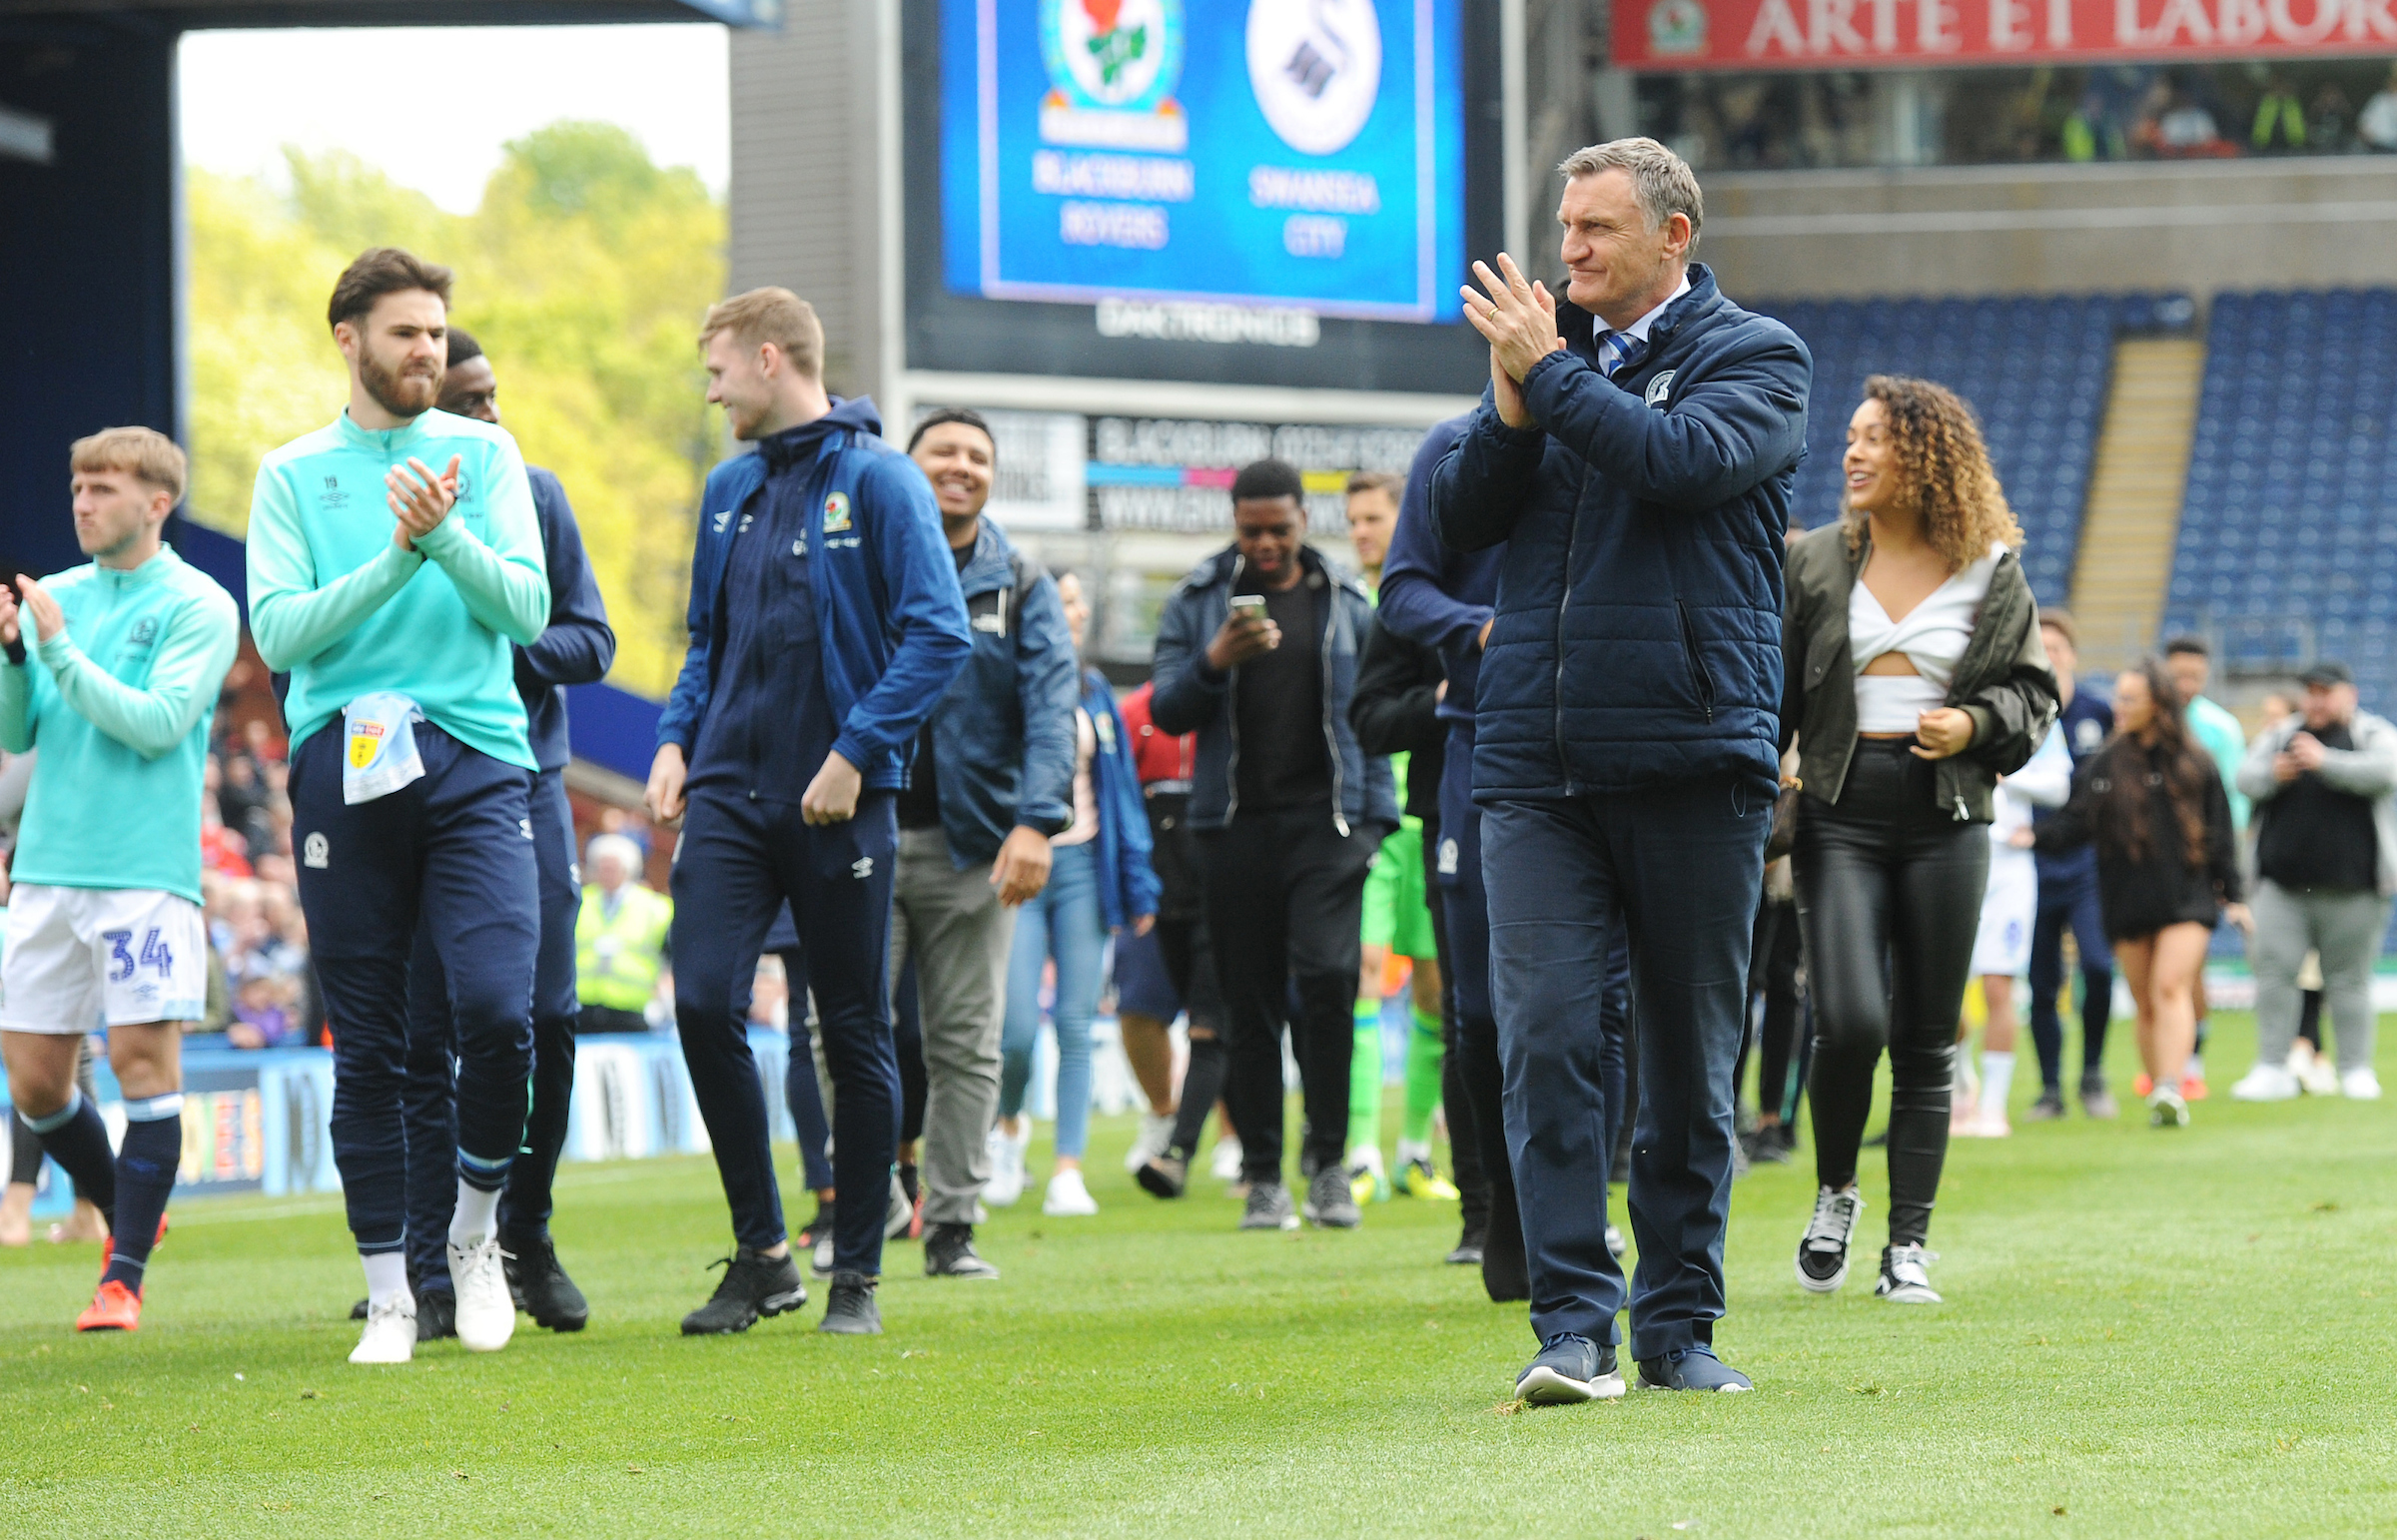 Tony Mowbray led the lap of honour after the final game against Swansea